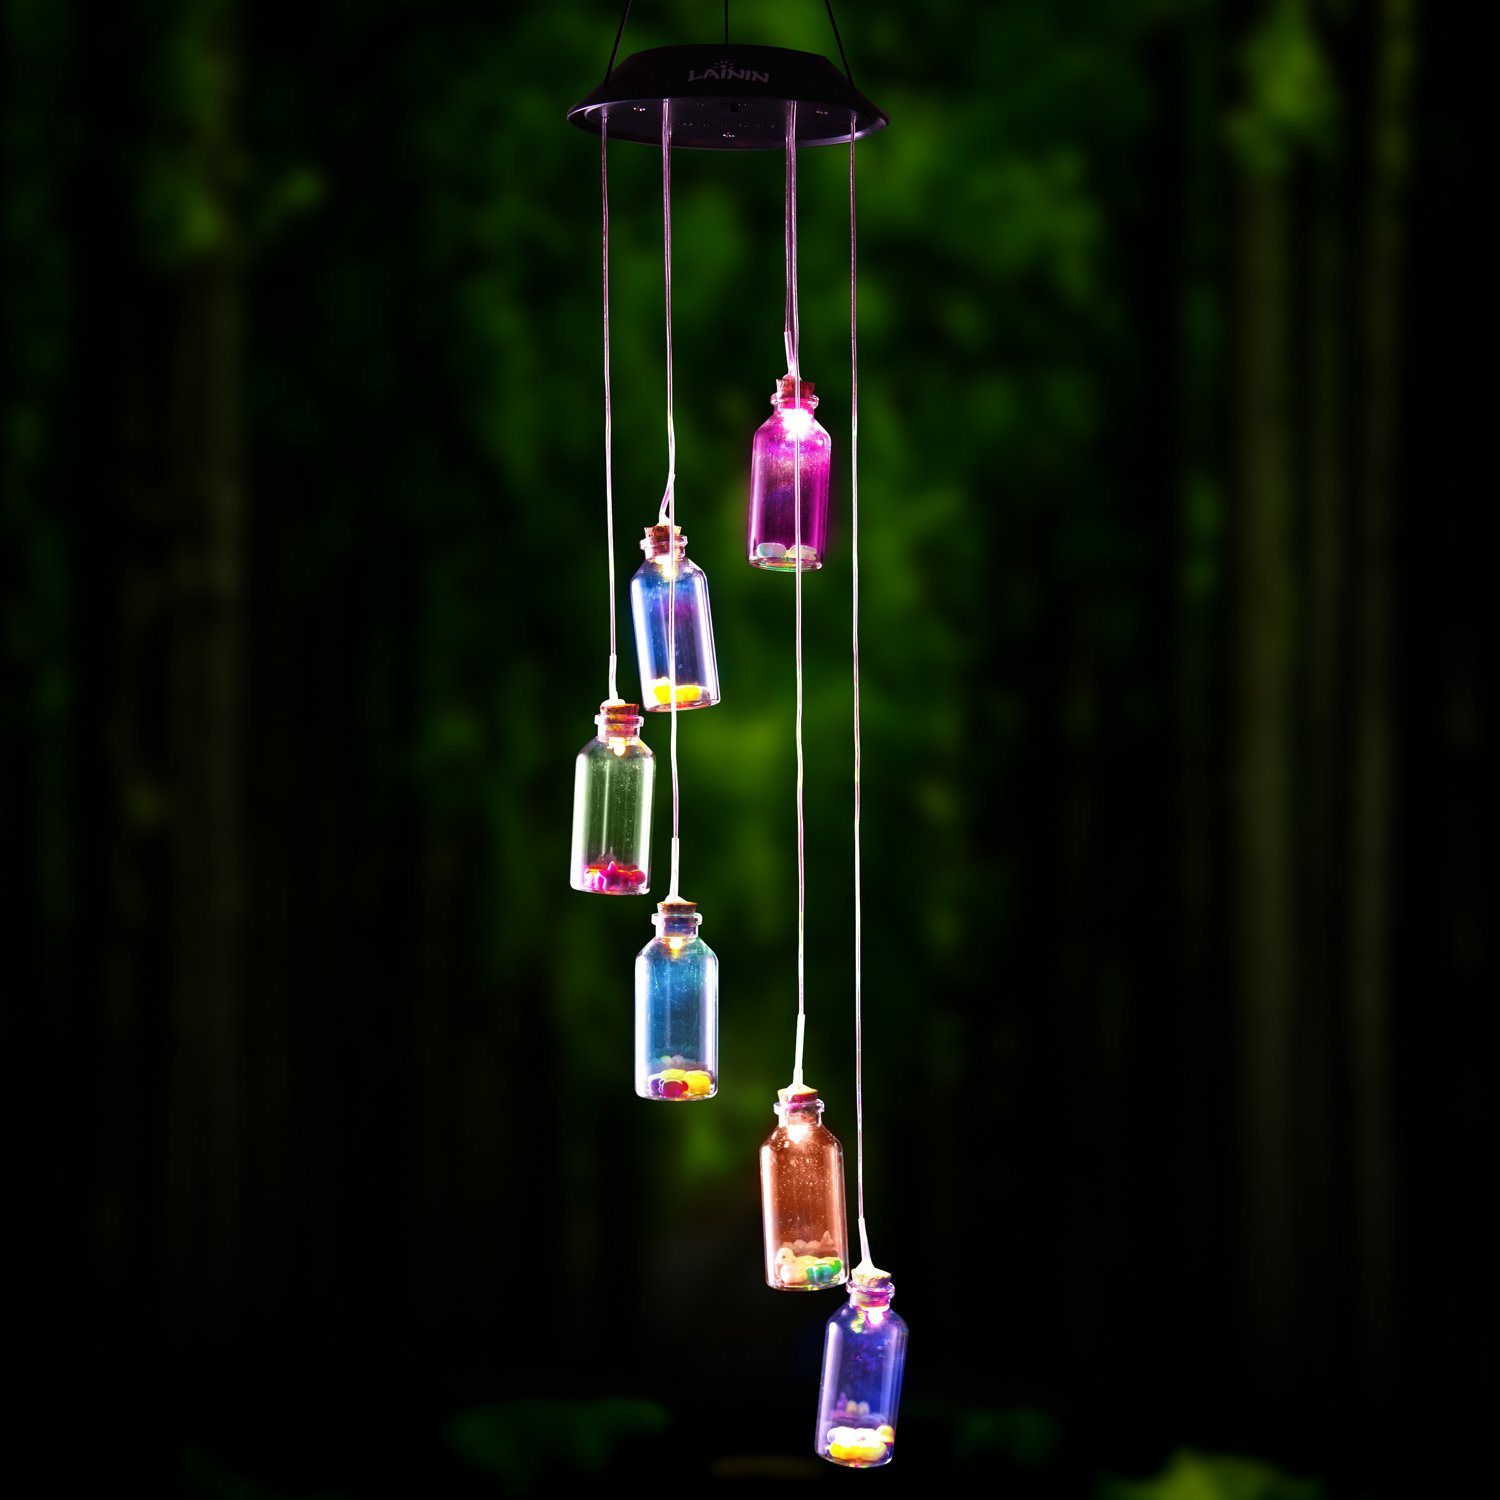 Novadeal Color Changing Solar Wind Chime Wishing Bottle Solar Hanging Night Light Mobile by Novadeal